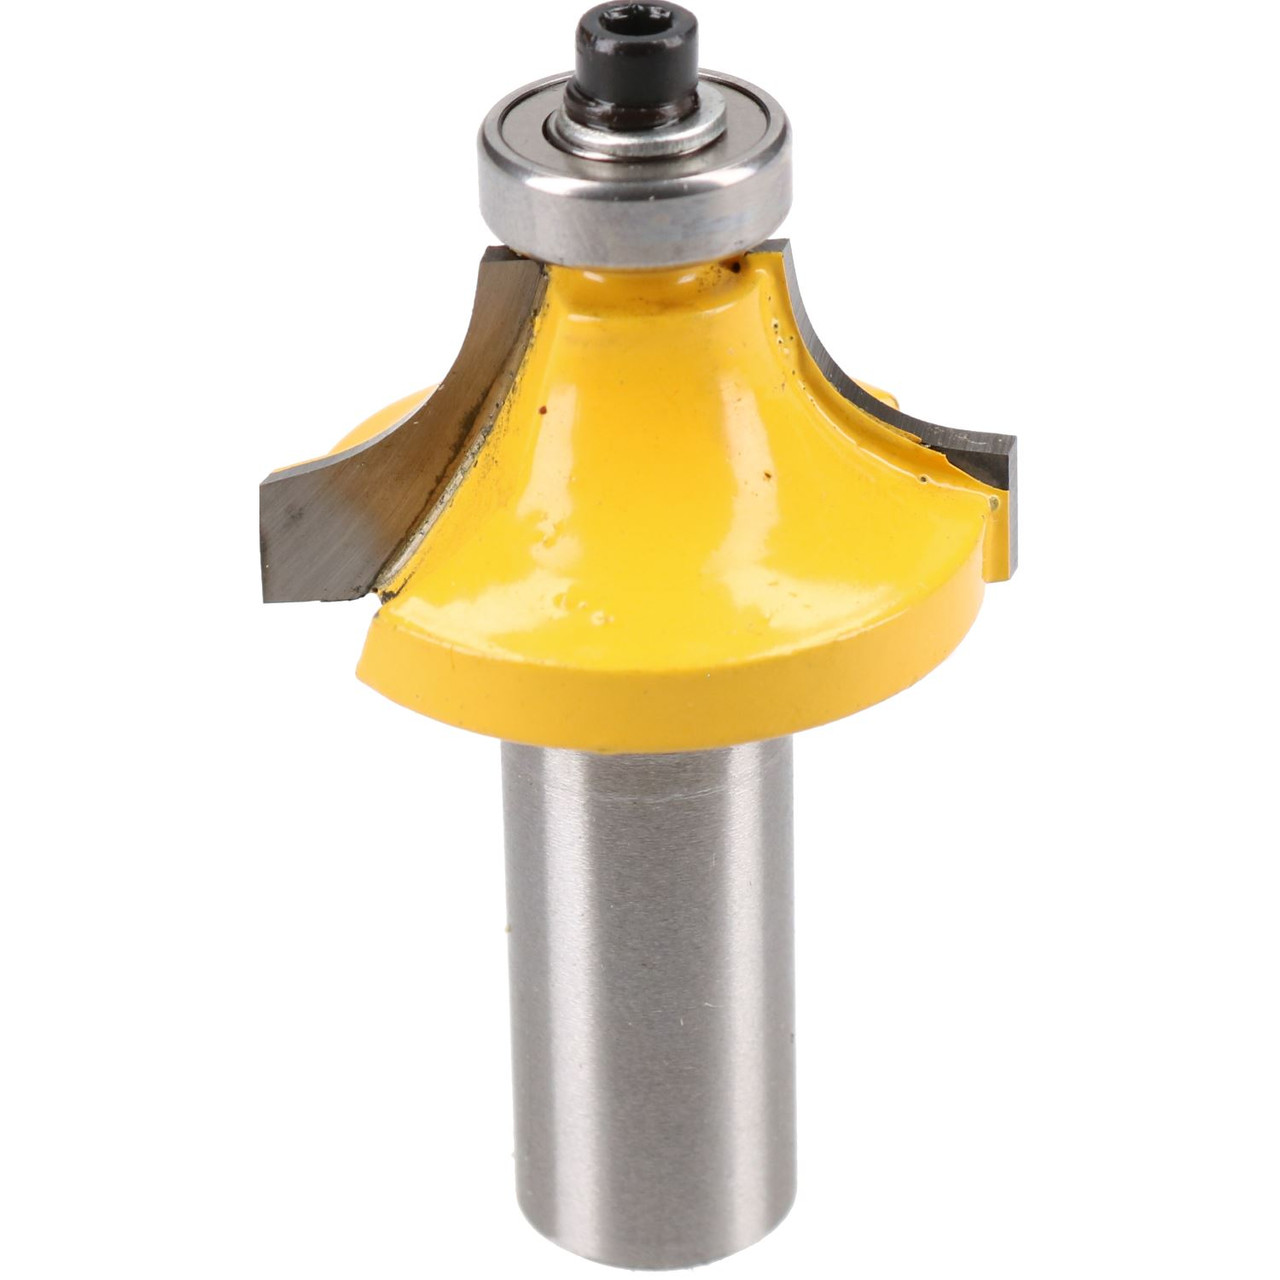 """TCT Round Over Router Bit Bearing Guided Cutter 30mm D 9.5mm R 1/2"""" Shank"""